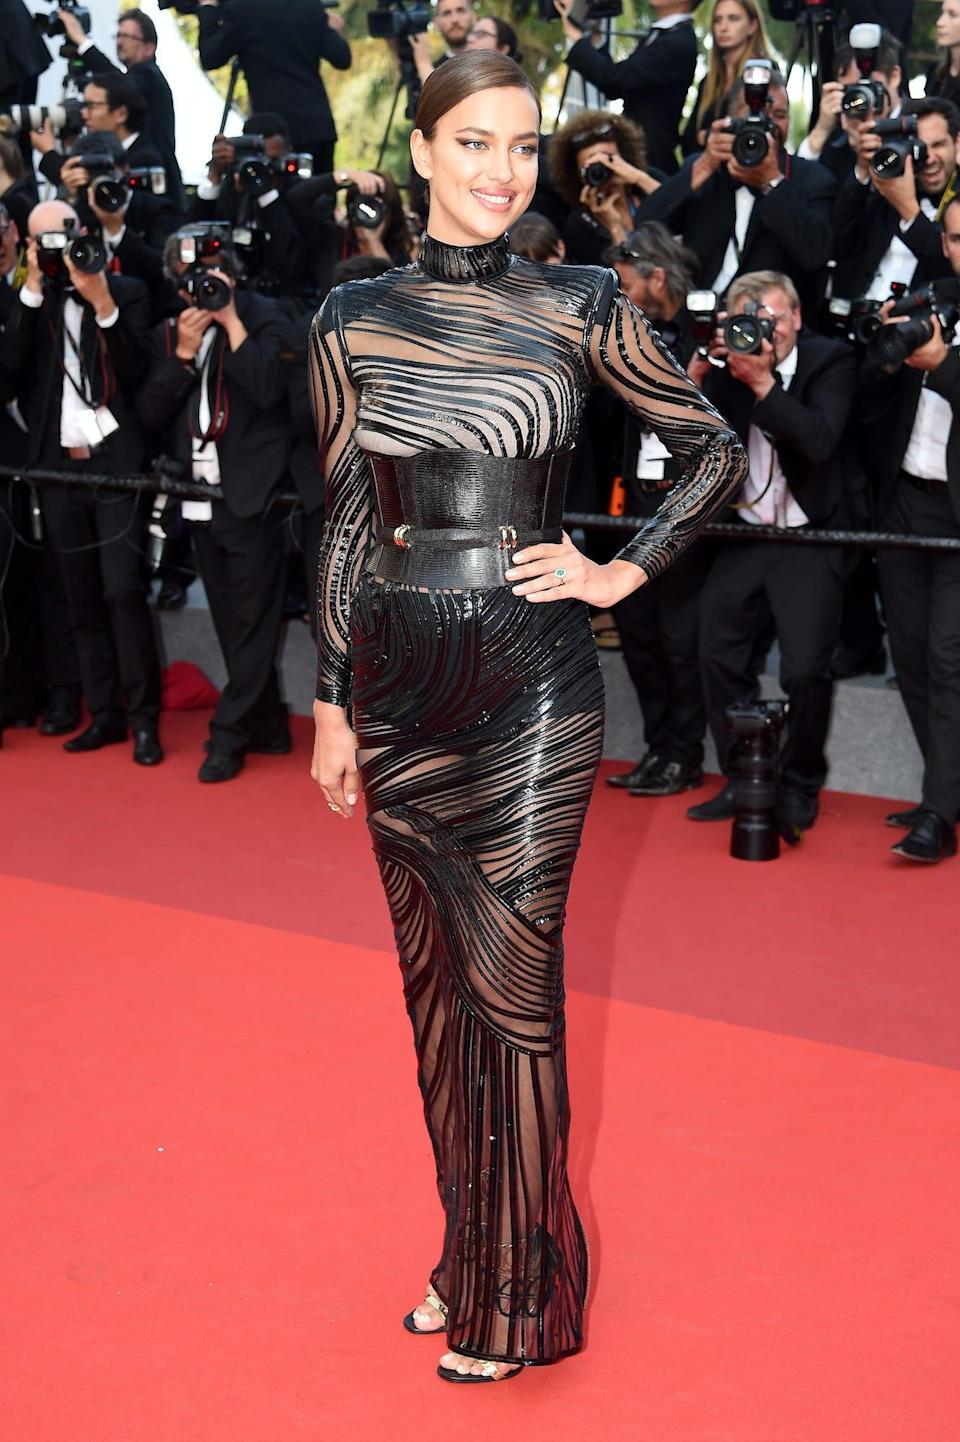 Irina Shayk wears a black dress and corset at the 2017 Cannes Film Festival.